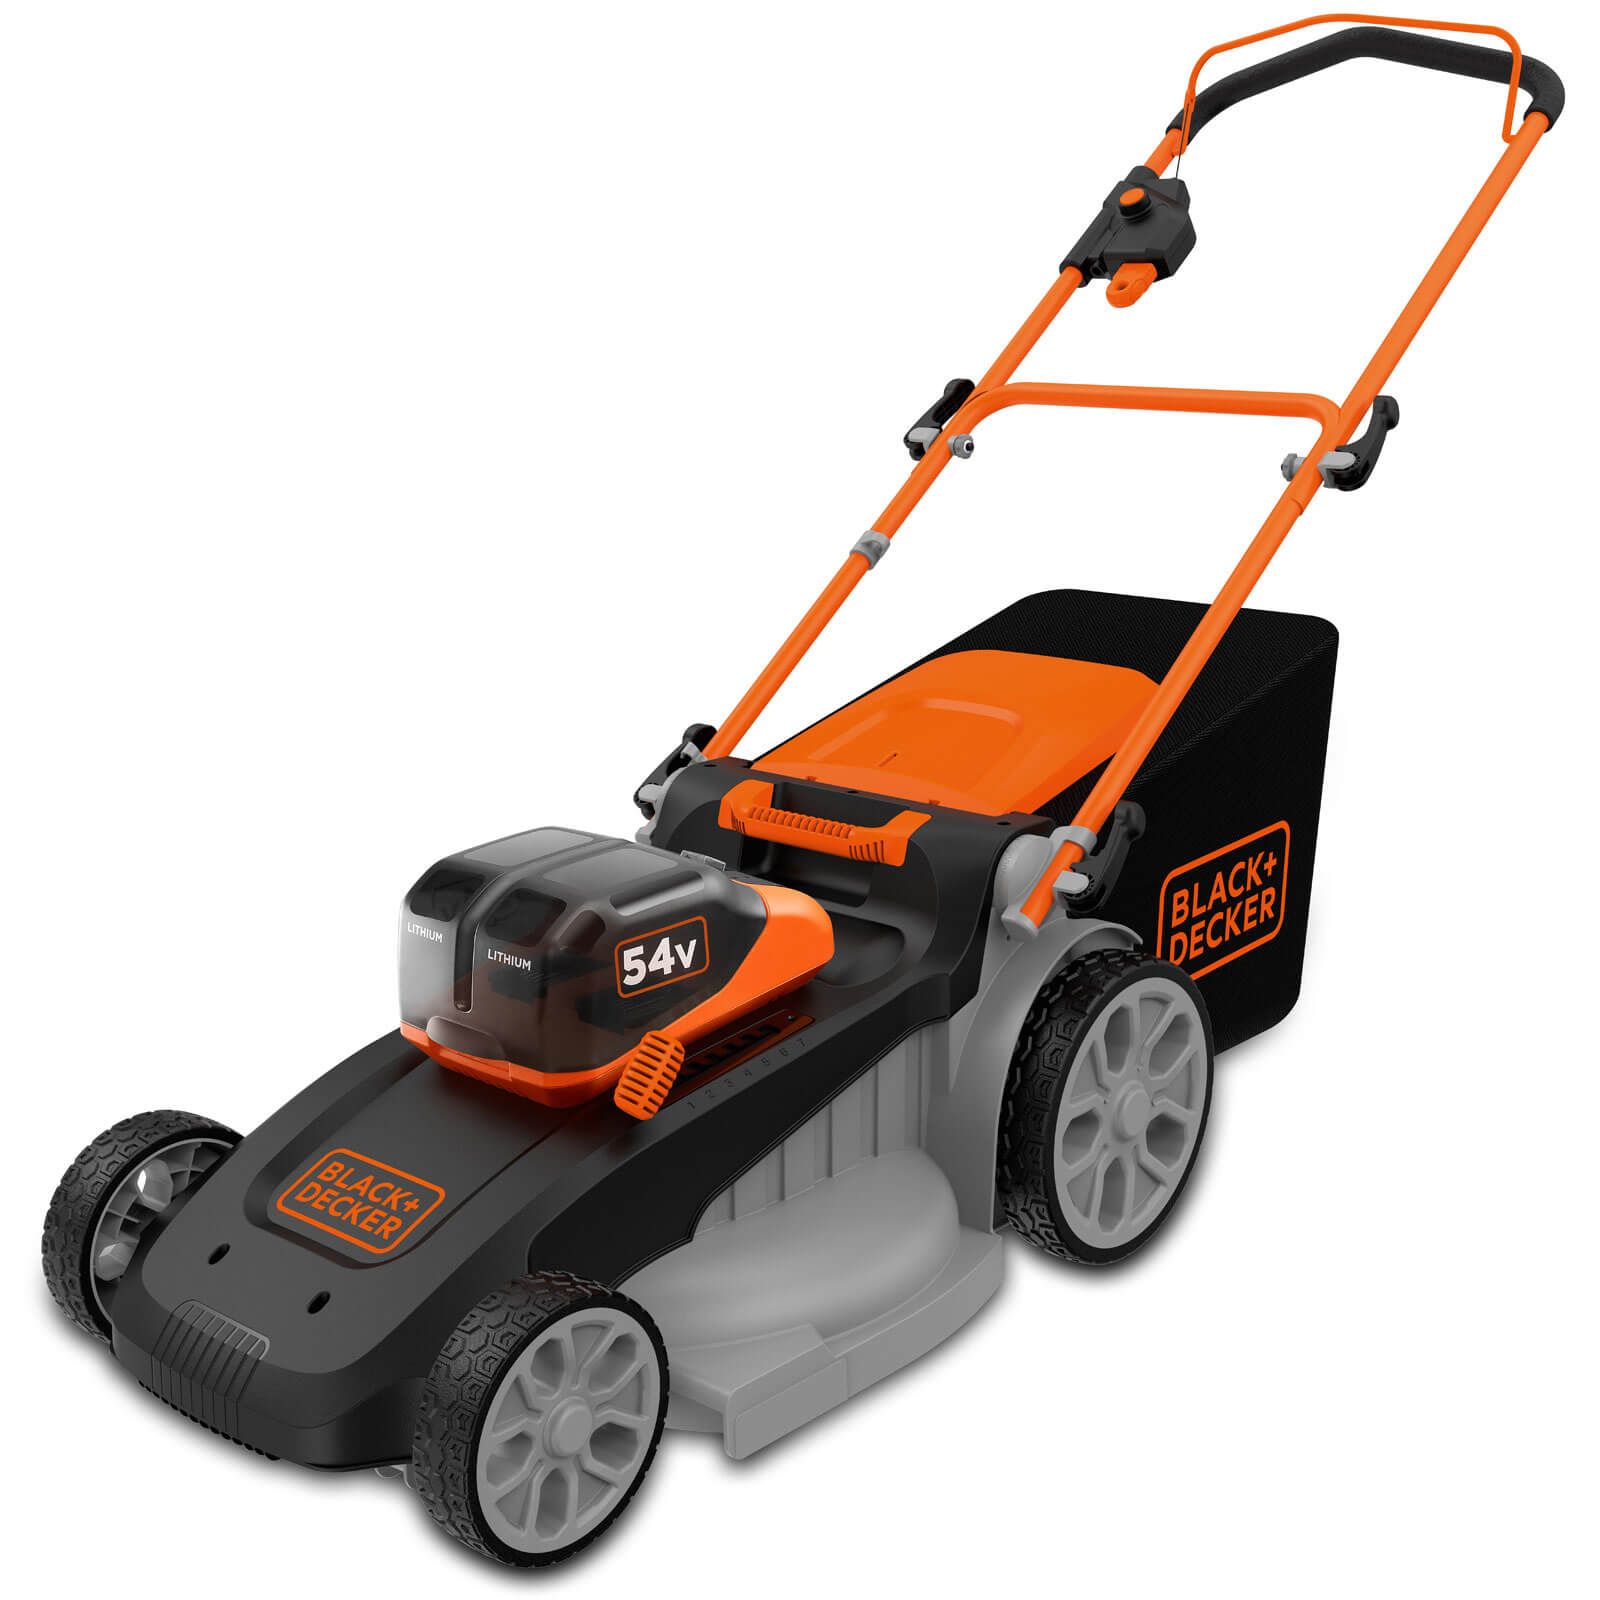 Image of Black and Decker CLM5448PCB 54v Cordless Dualvolt Rotary Lawnmower 480mm No Batteries No Charger